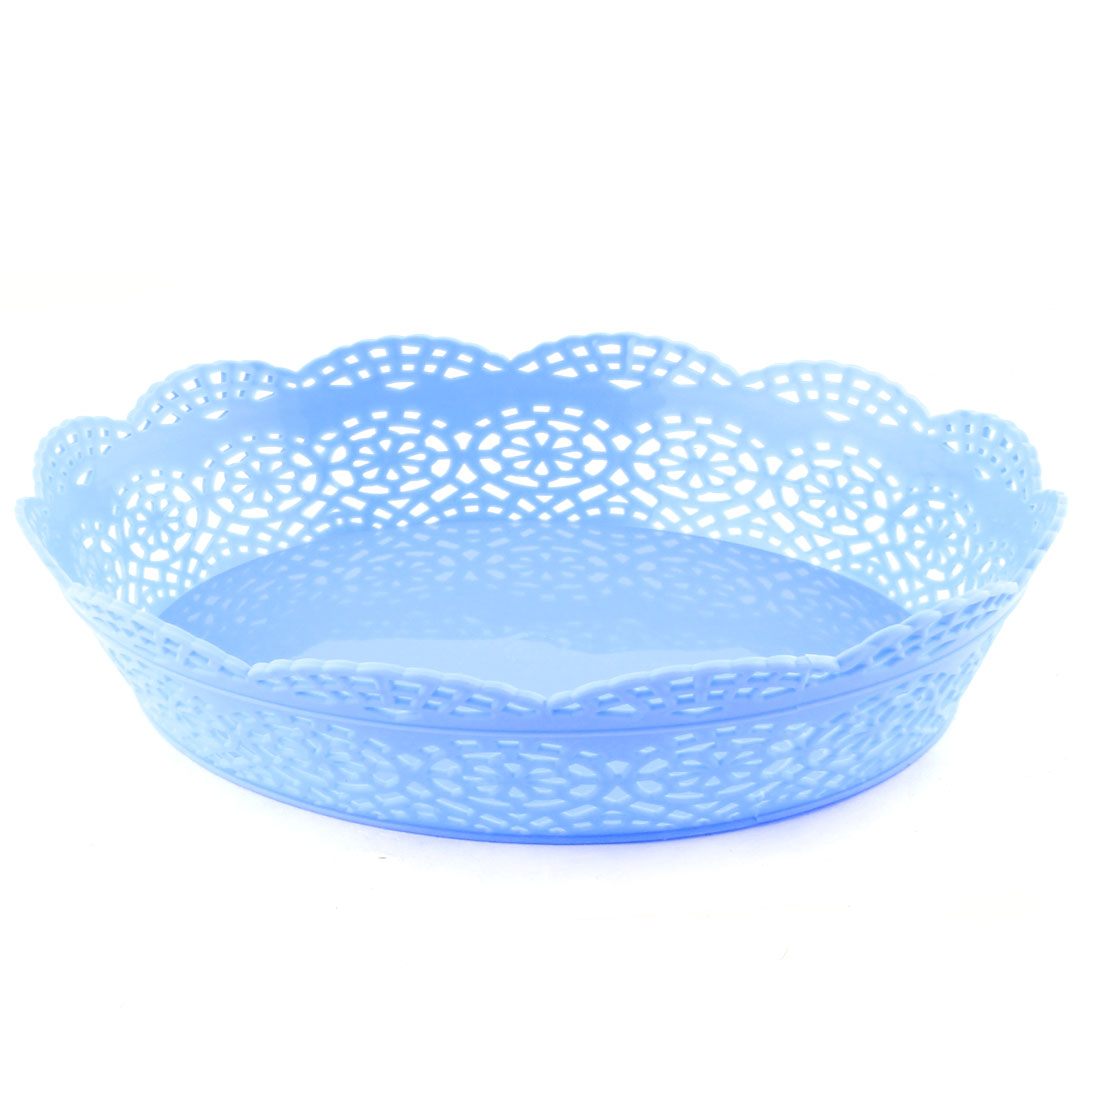 Home Living Room Plastic Oval Shaped Hollow Out Wave Edge Fruit Plate Basket Blue